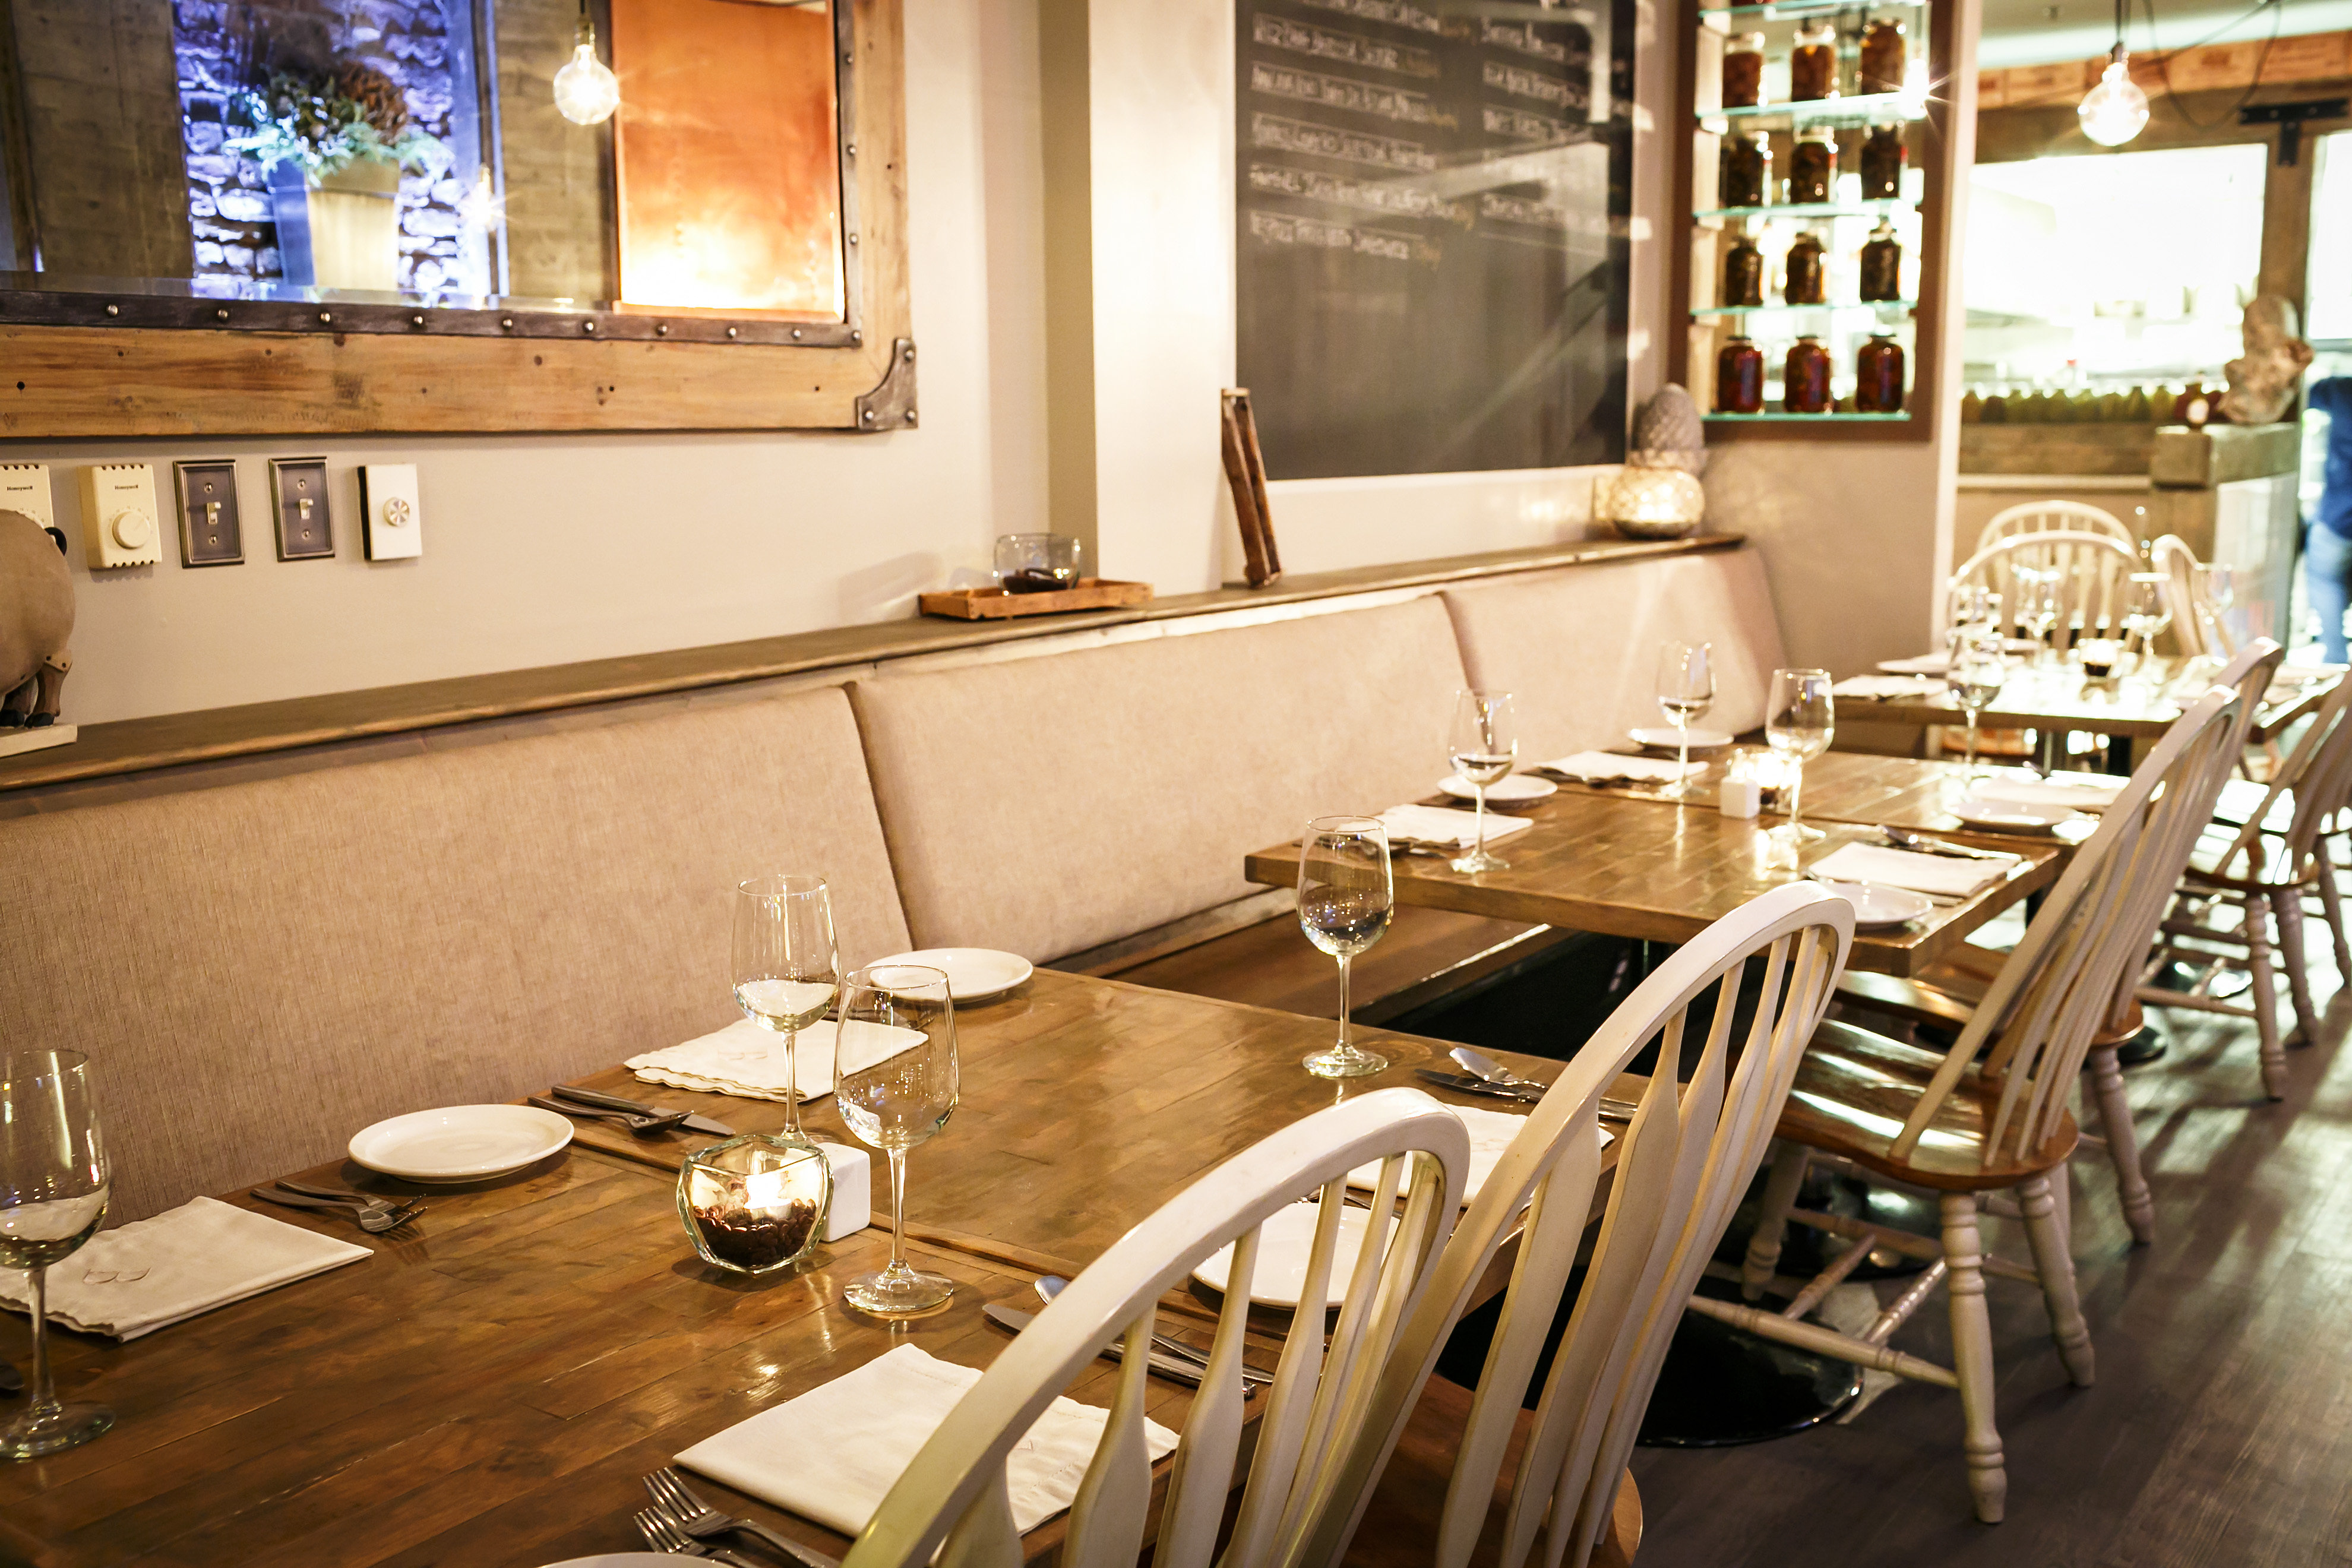 Our Recently Renovated Main Dining Room Banquette Seating For Groups Up To 16